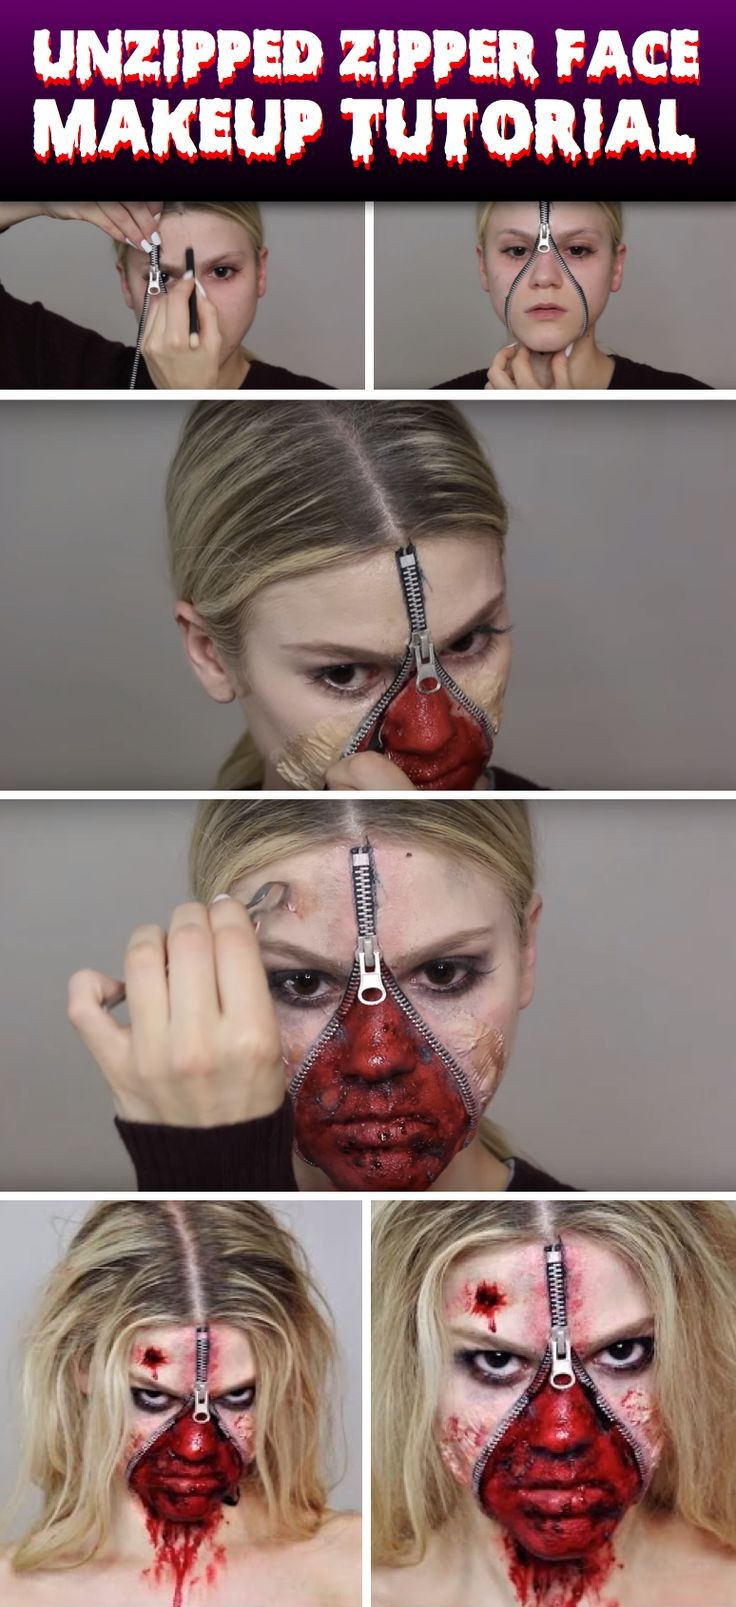 get all gruesome and spooky with this unzipped zipper face halloween makeup